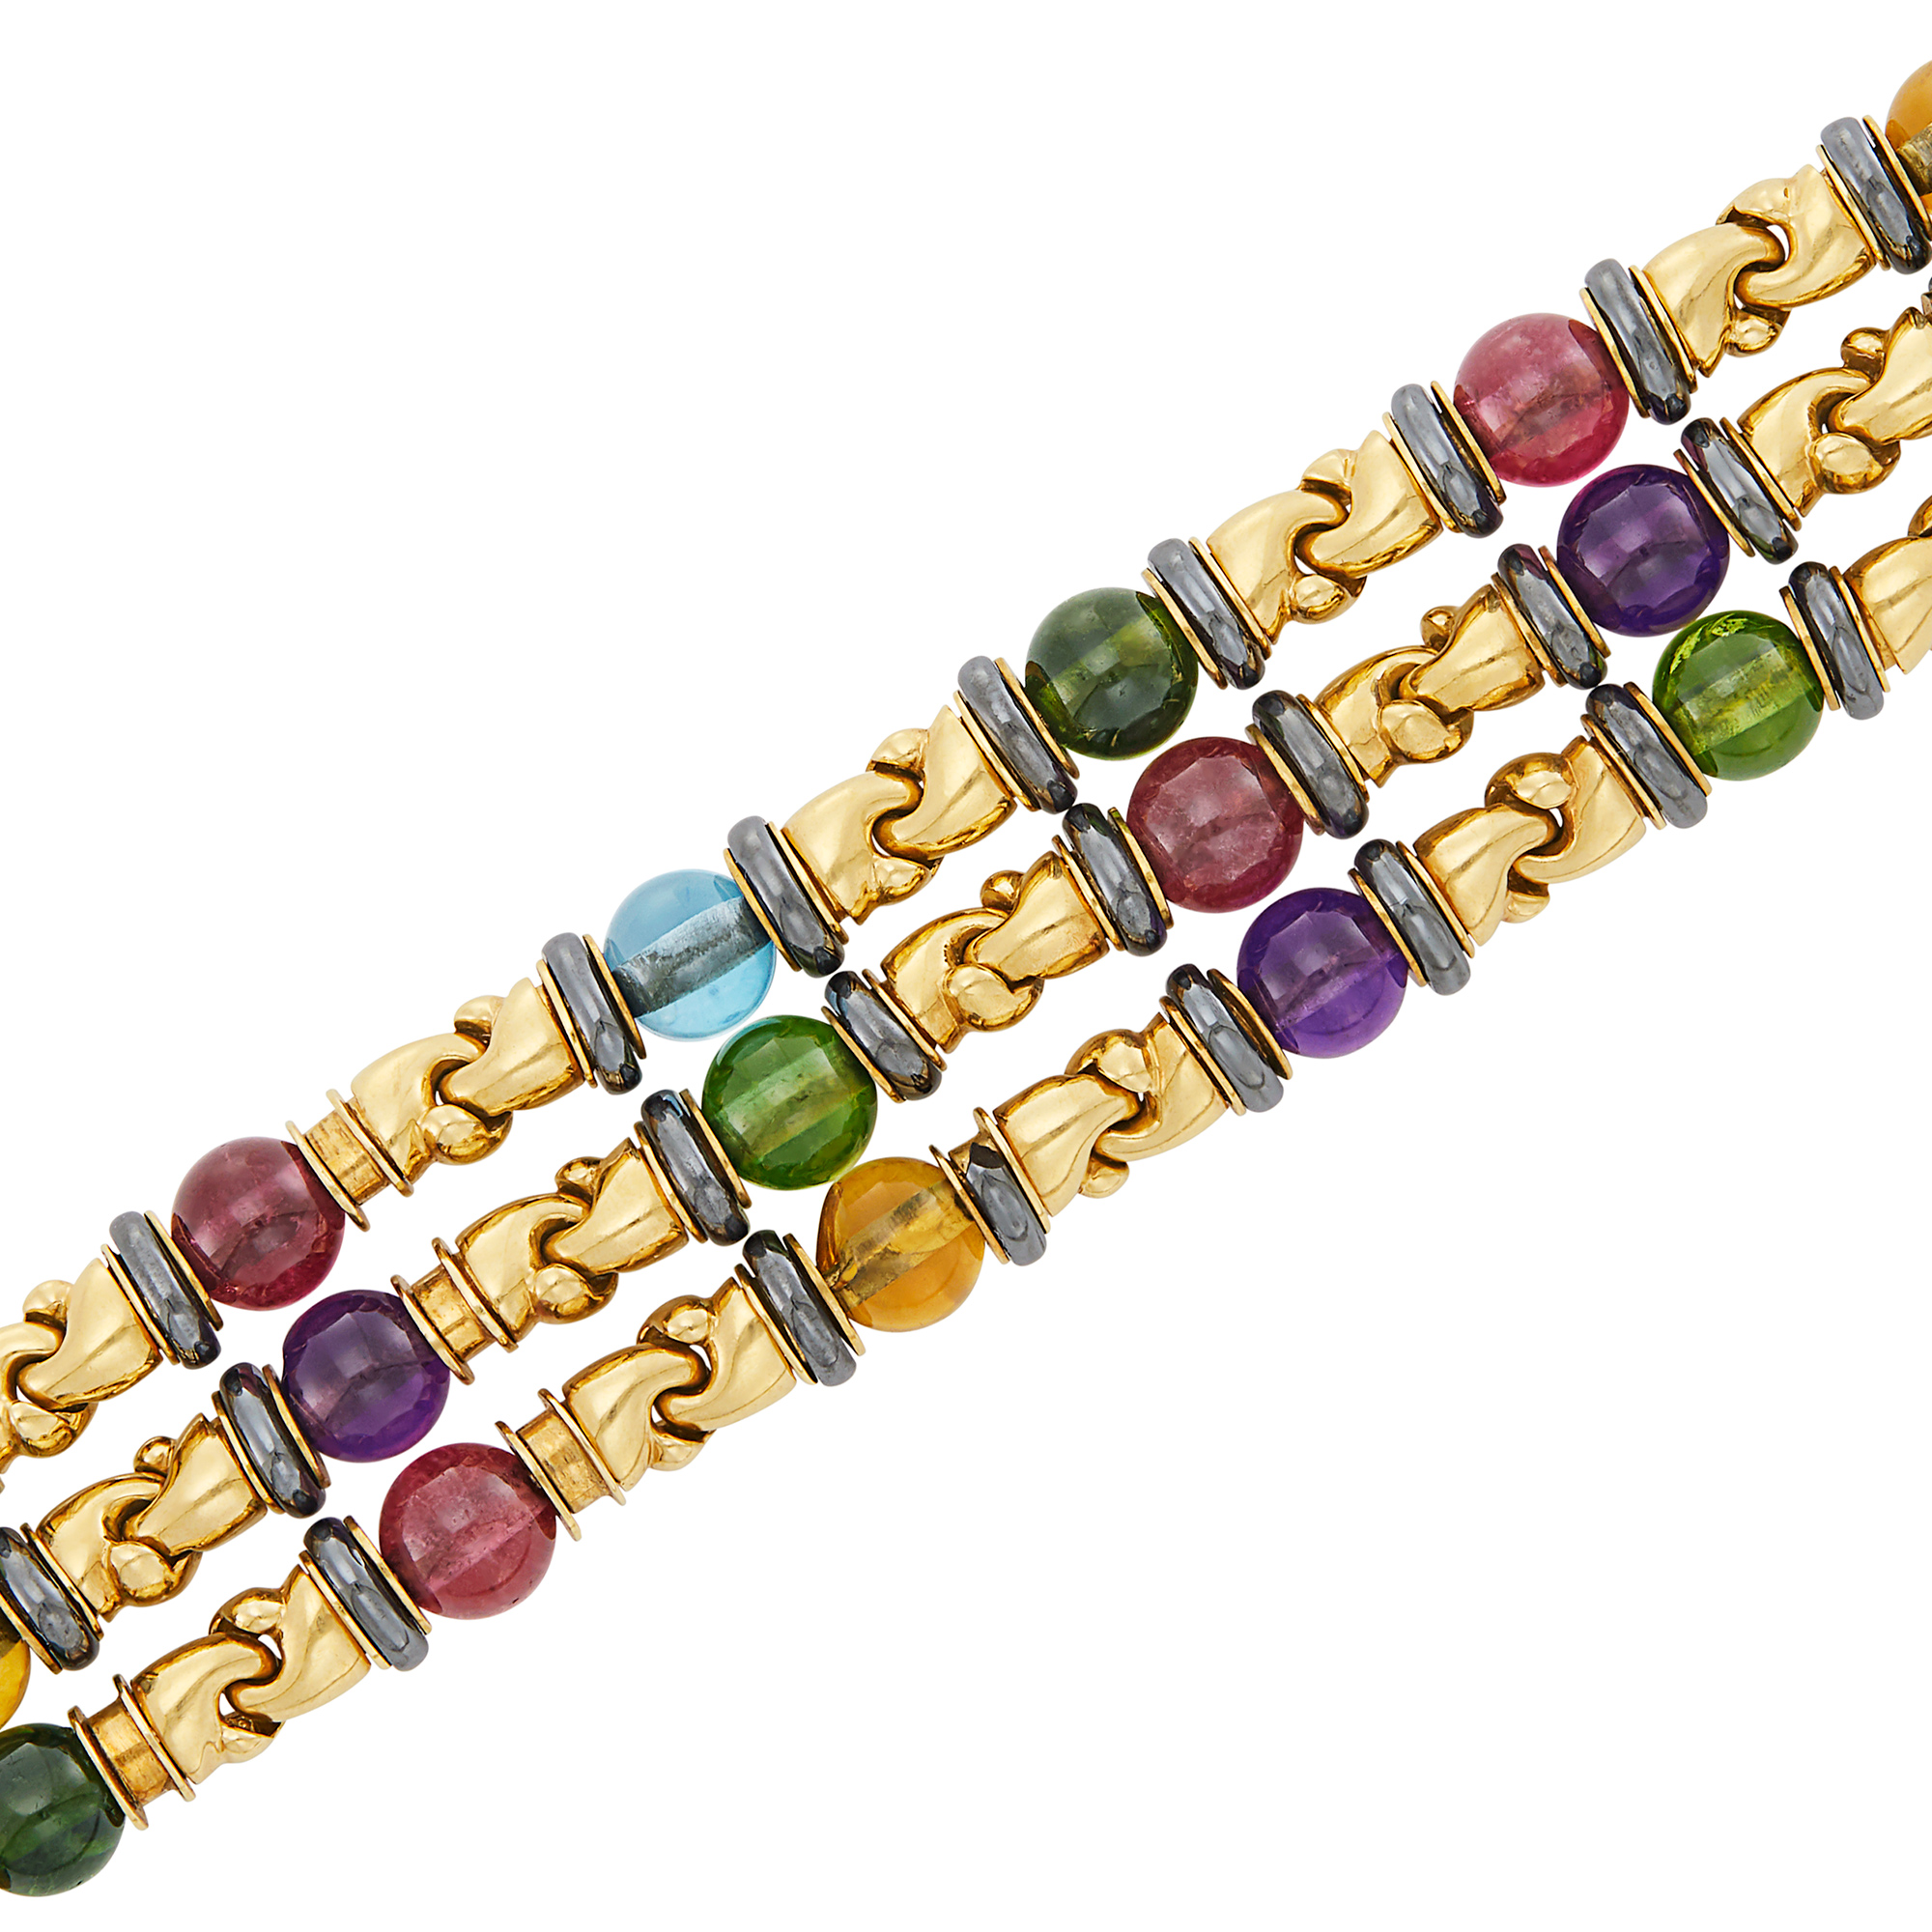 Lot image - Triple Strand Gold, Colored Stone Bead, Hematite and Cabochon Ruby Bracelet, Bulgari